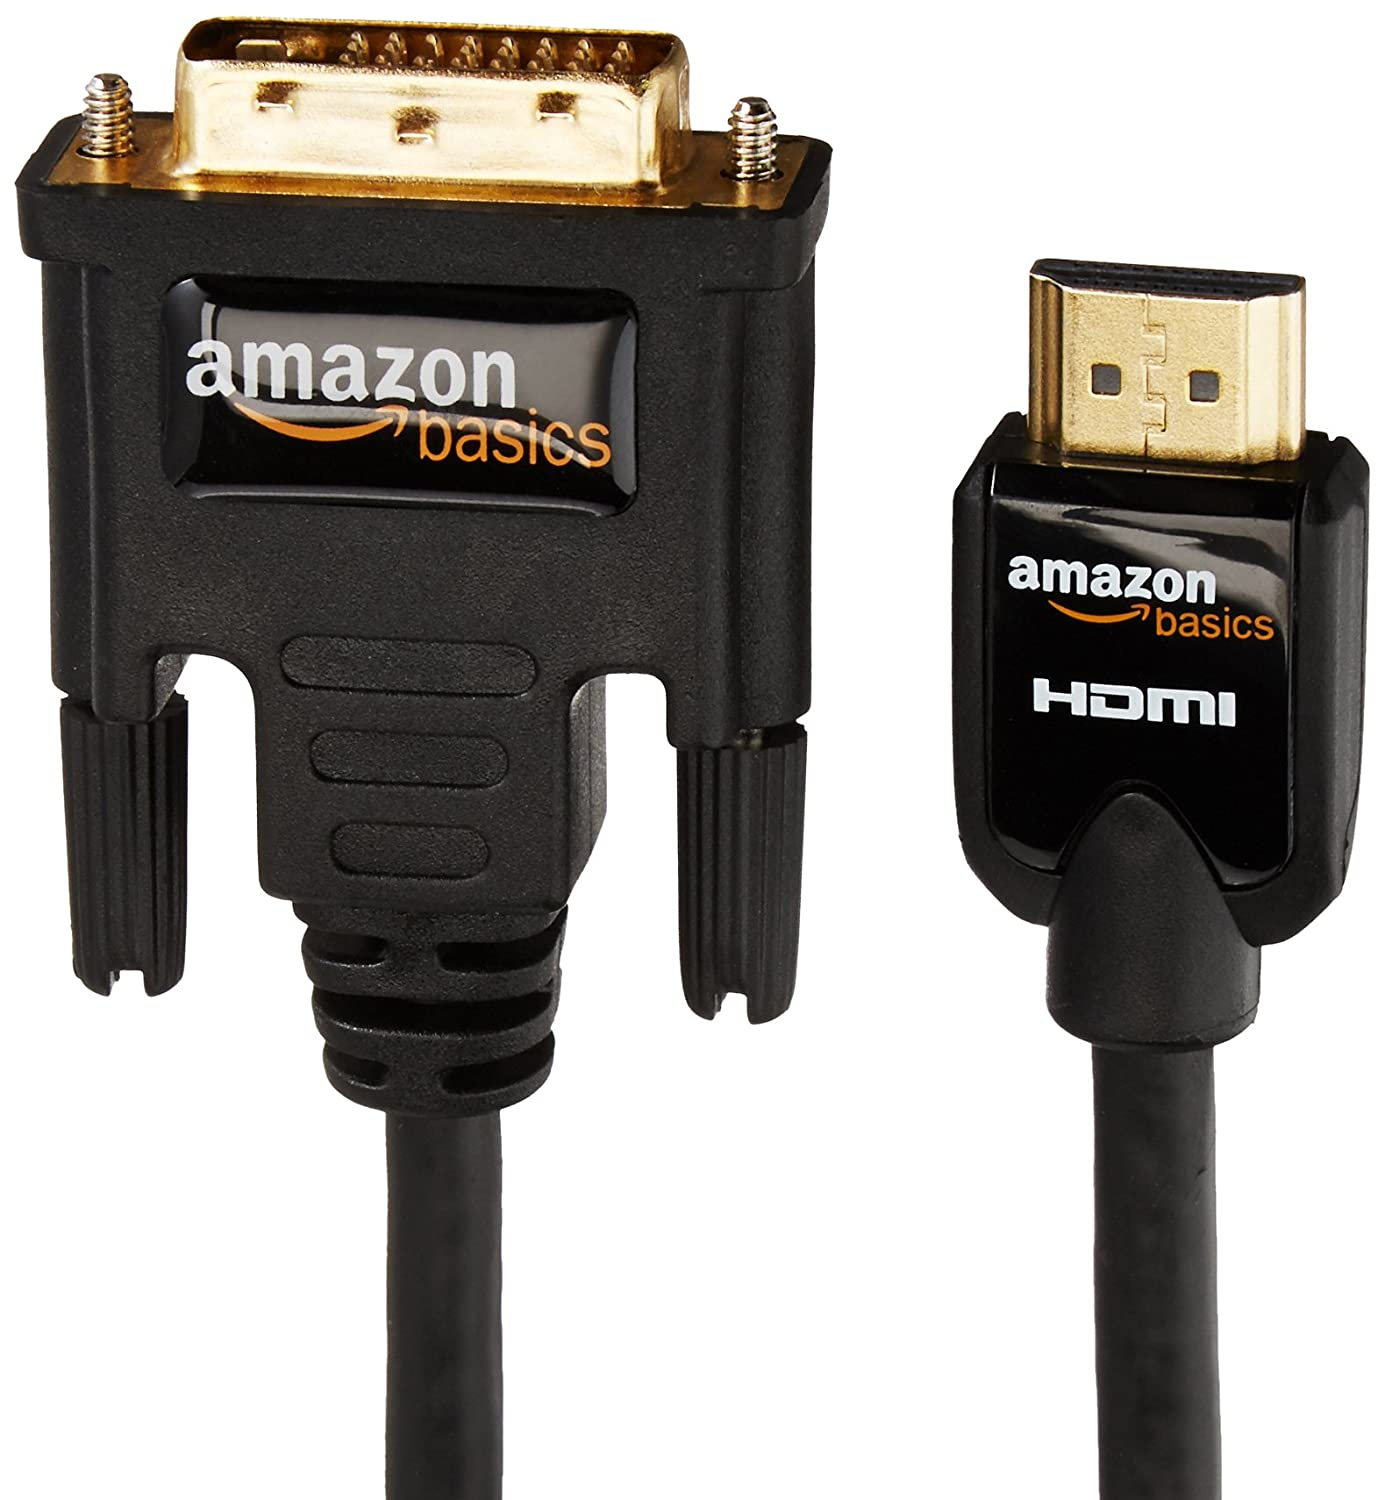 Amazonbasics Hdmi To Dvi Adapter Cable 3 M 98 Feet Pin Firewire 400 Likewise Usb Laptop Tv On Computers Accessories